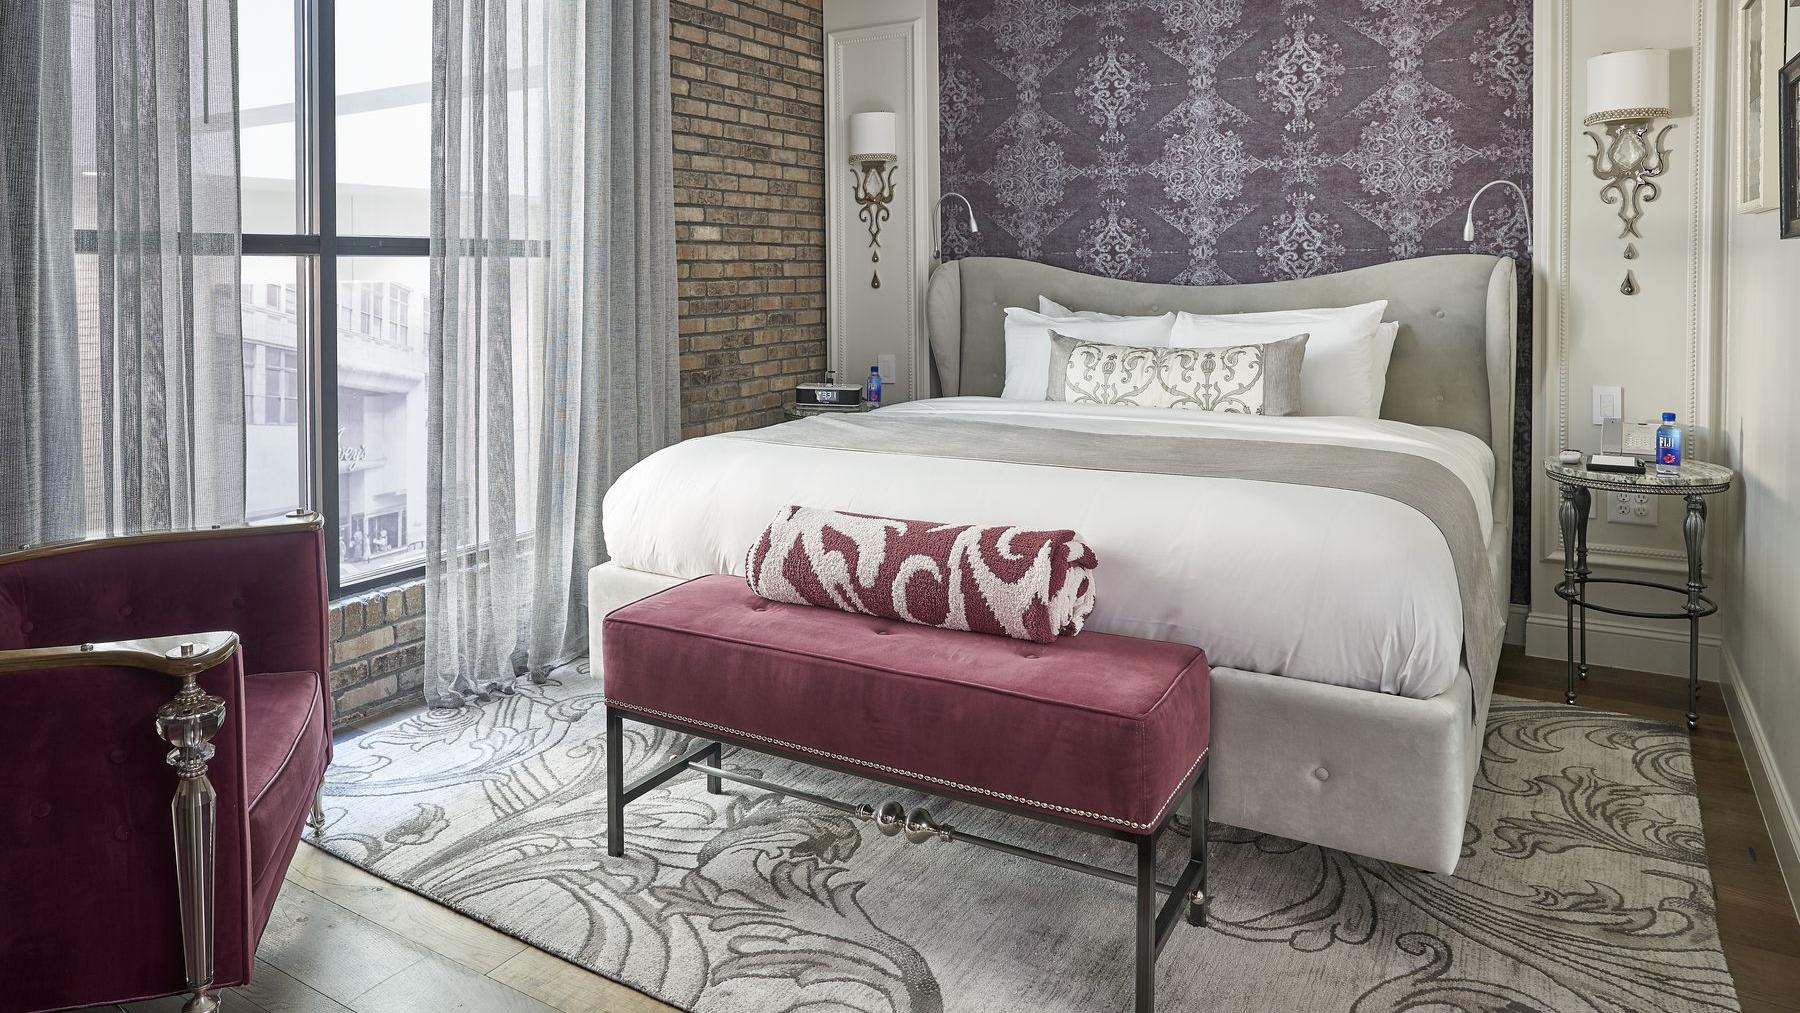 bed in cozy room with carpet and floral headboard